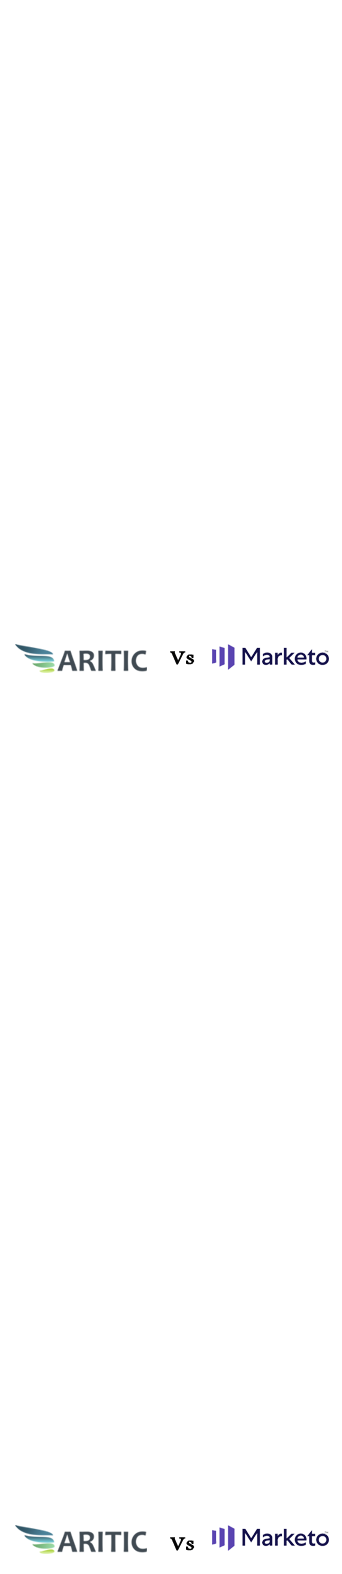 Marketo Alternatives